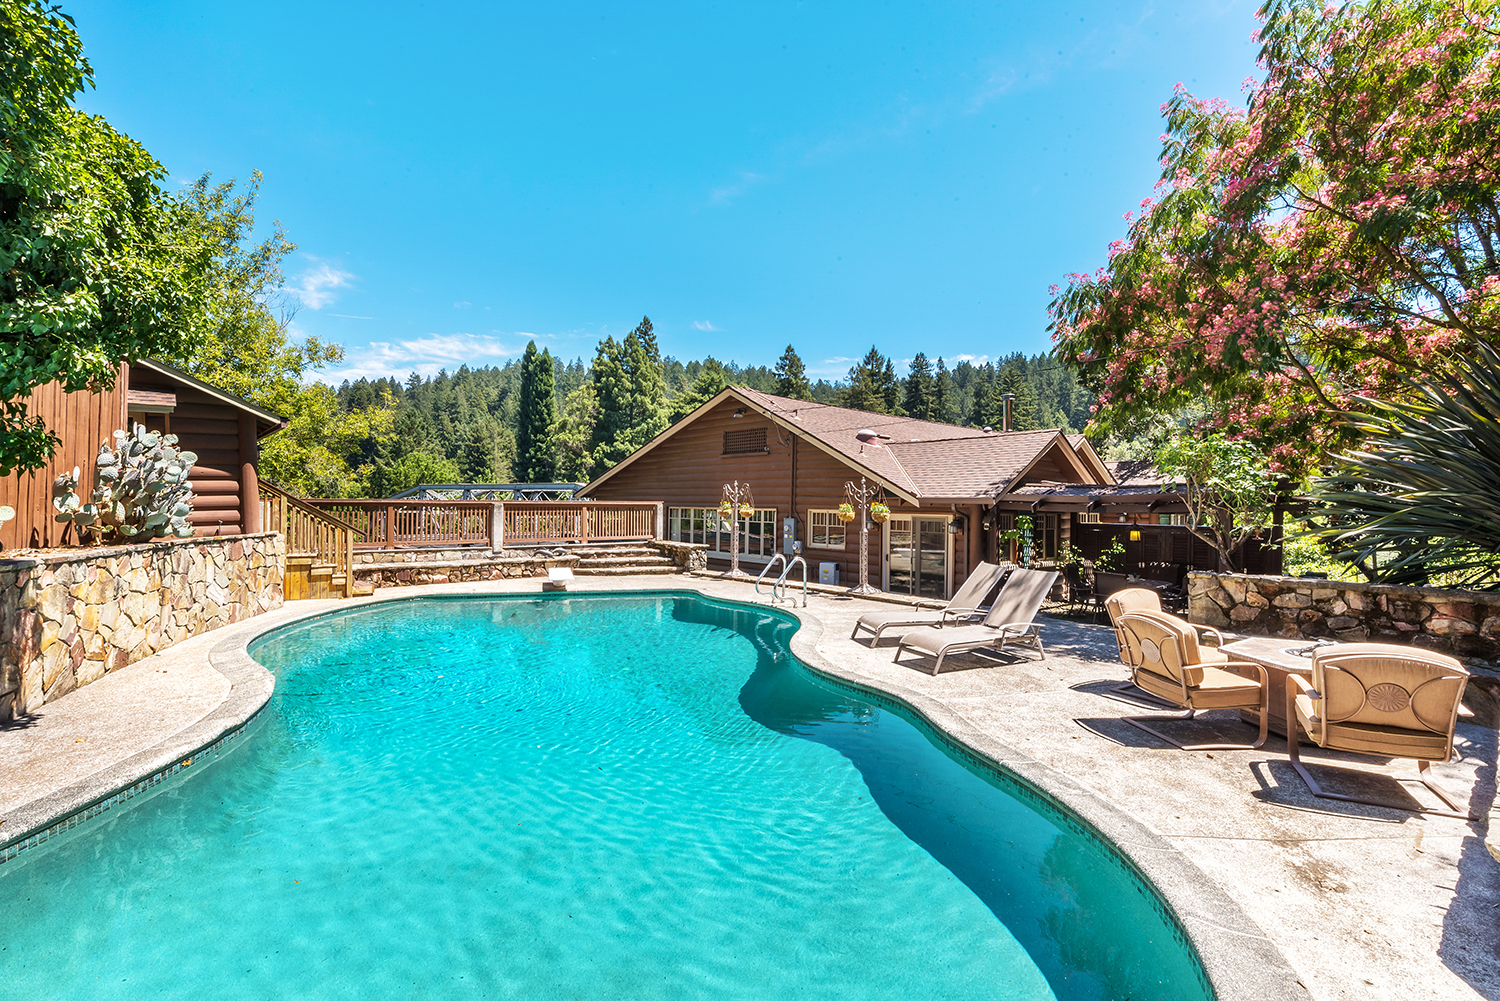 Forestville CA Vacation Rental Welcome to Rocktop!